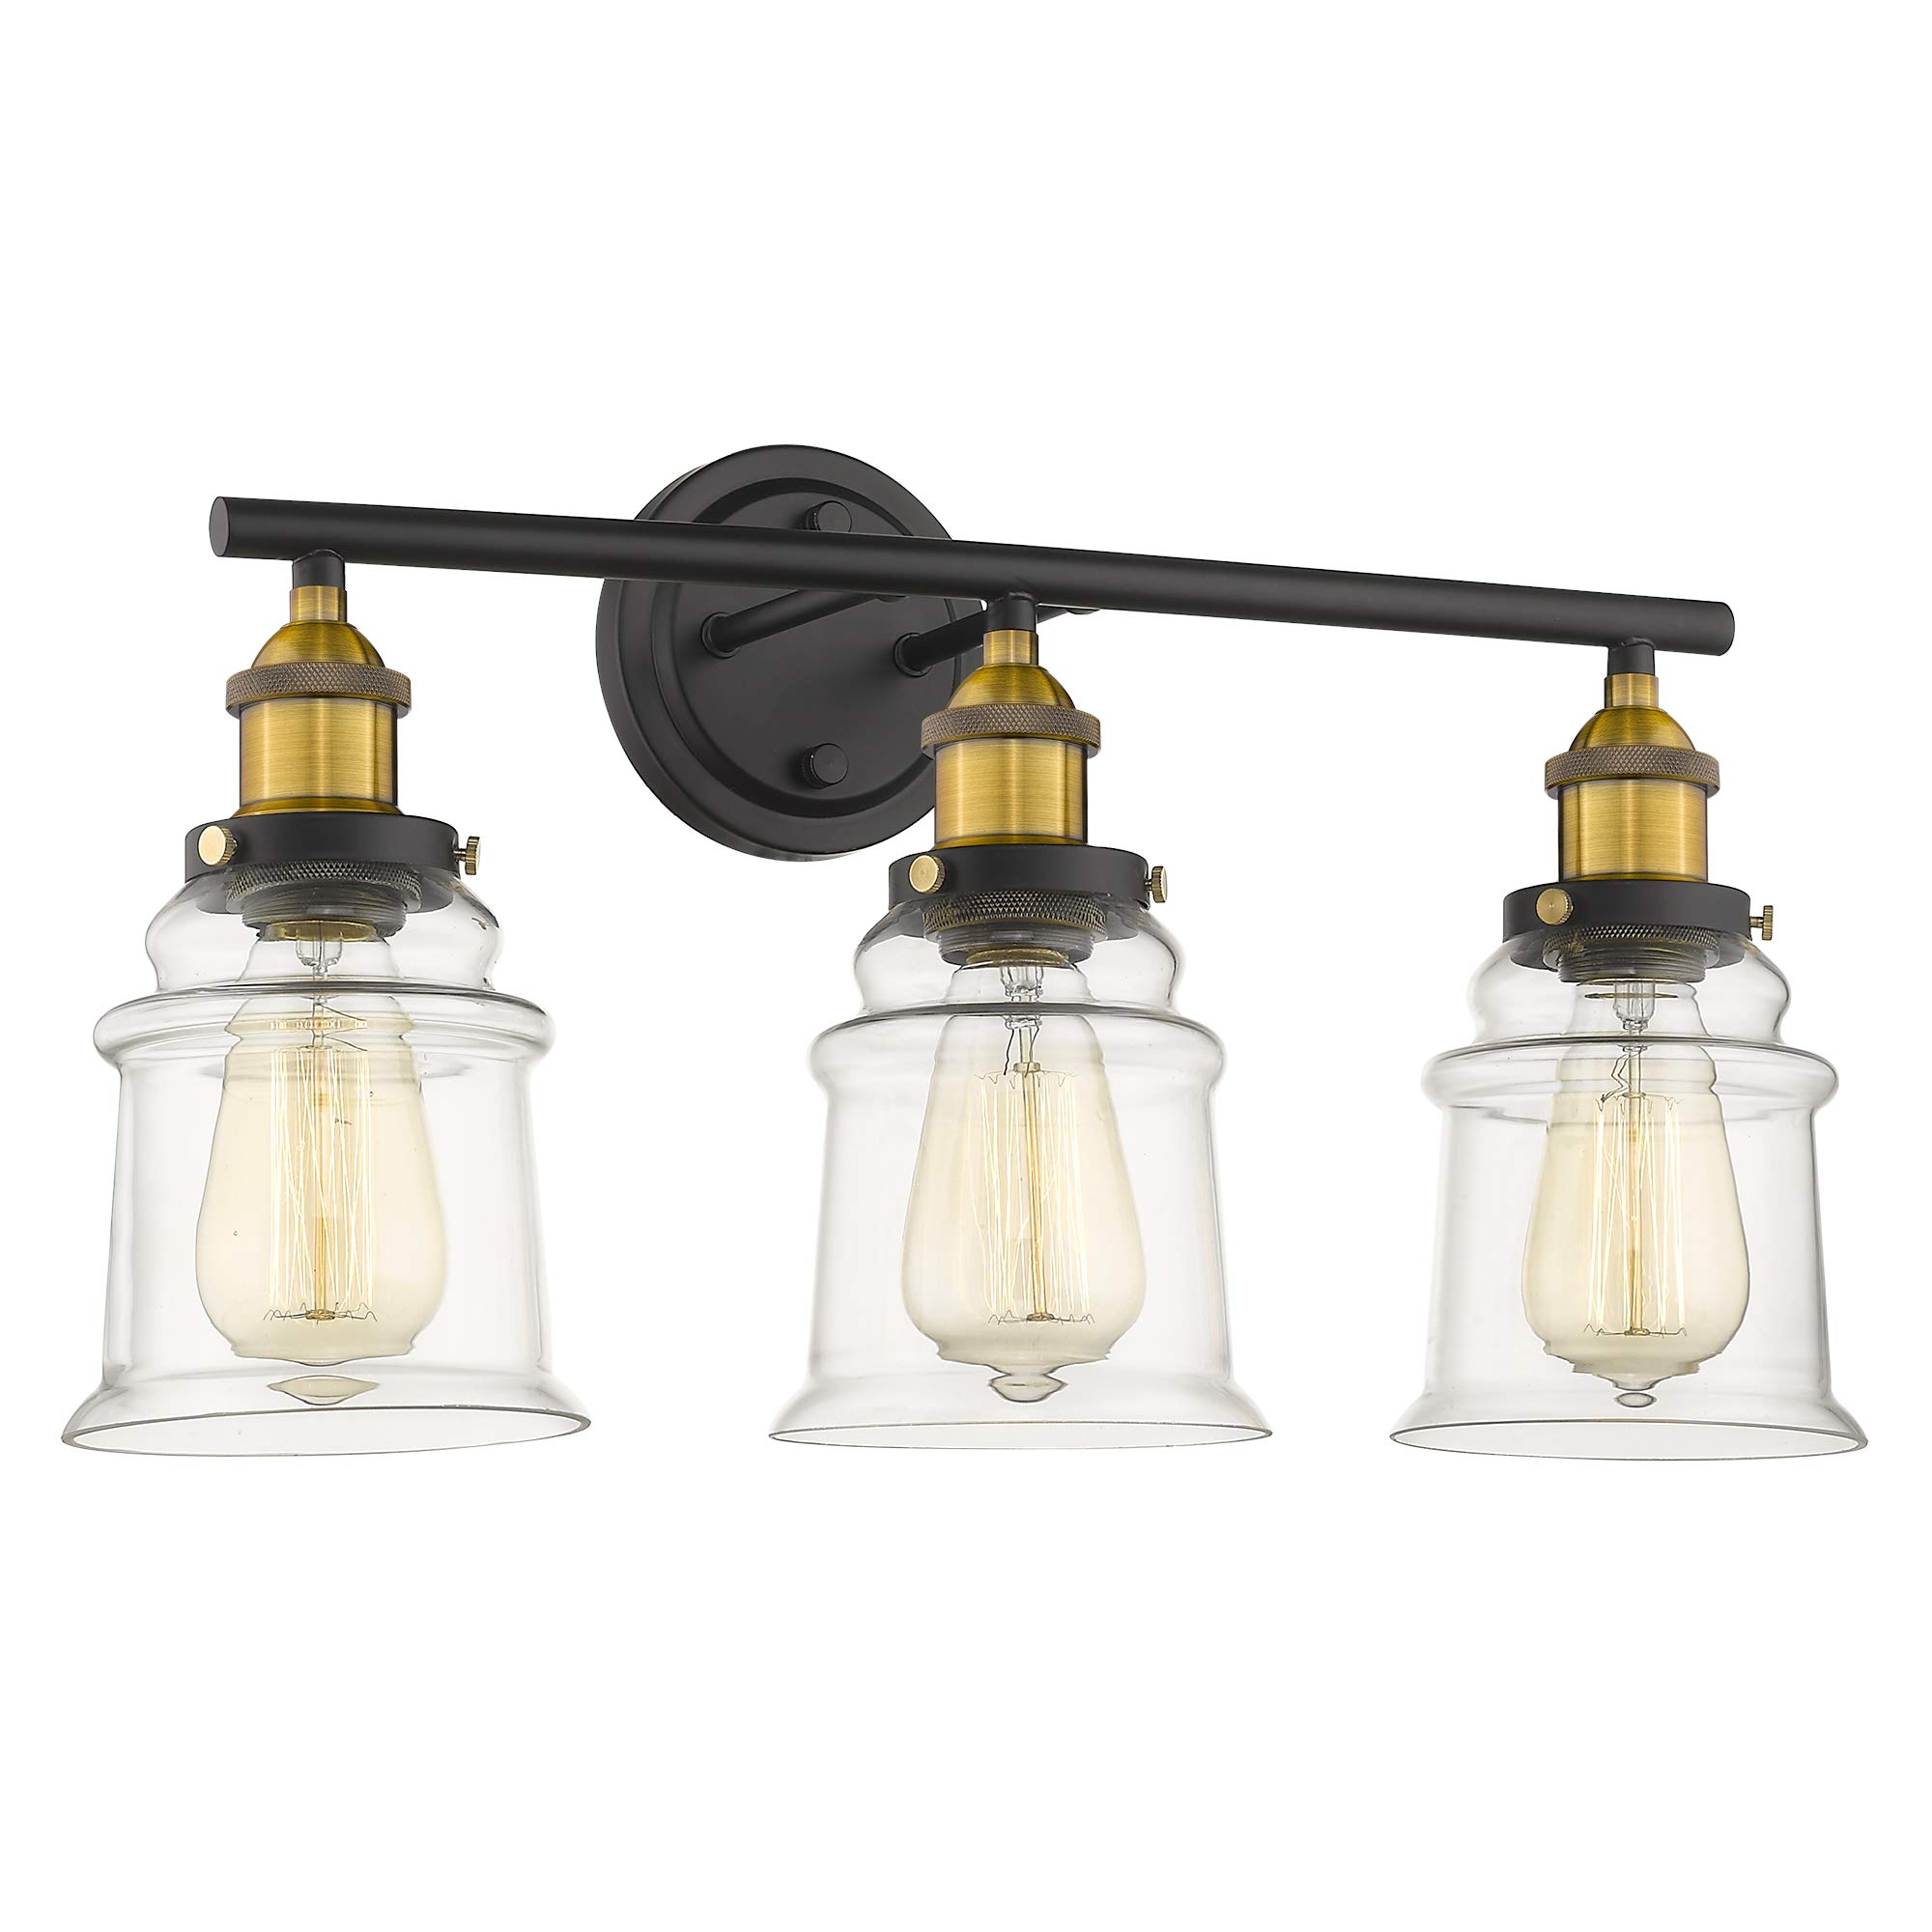 Vanity Lights Wall Lights Bathroom Vanity Lighting, Beionxii 21'' in Length 3-Lights Industrial Retro Antique Wall Sconce Lamps Brushed Brass Black Finish with Clear Glass Shade for Bathroom Kitchen